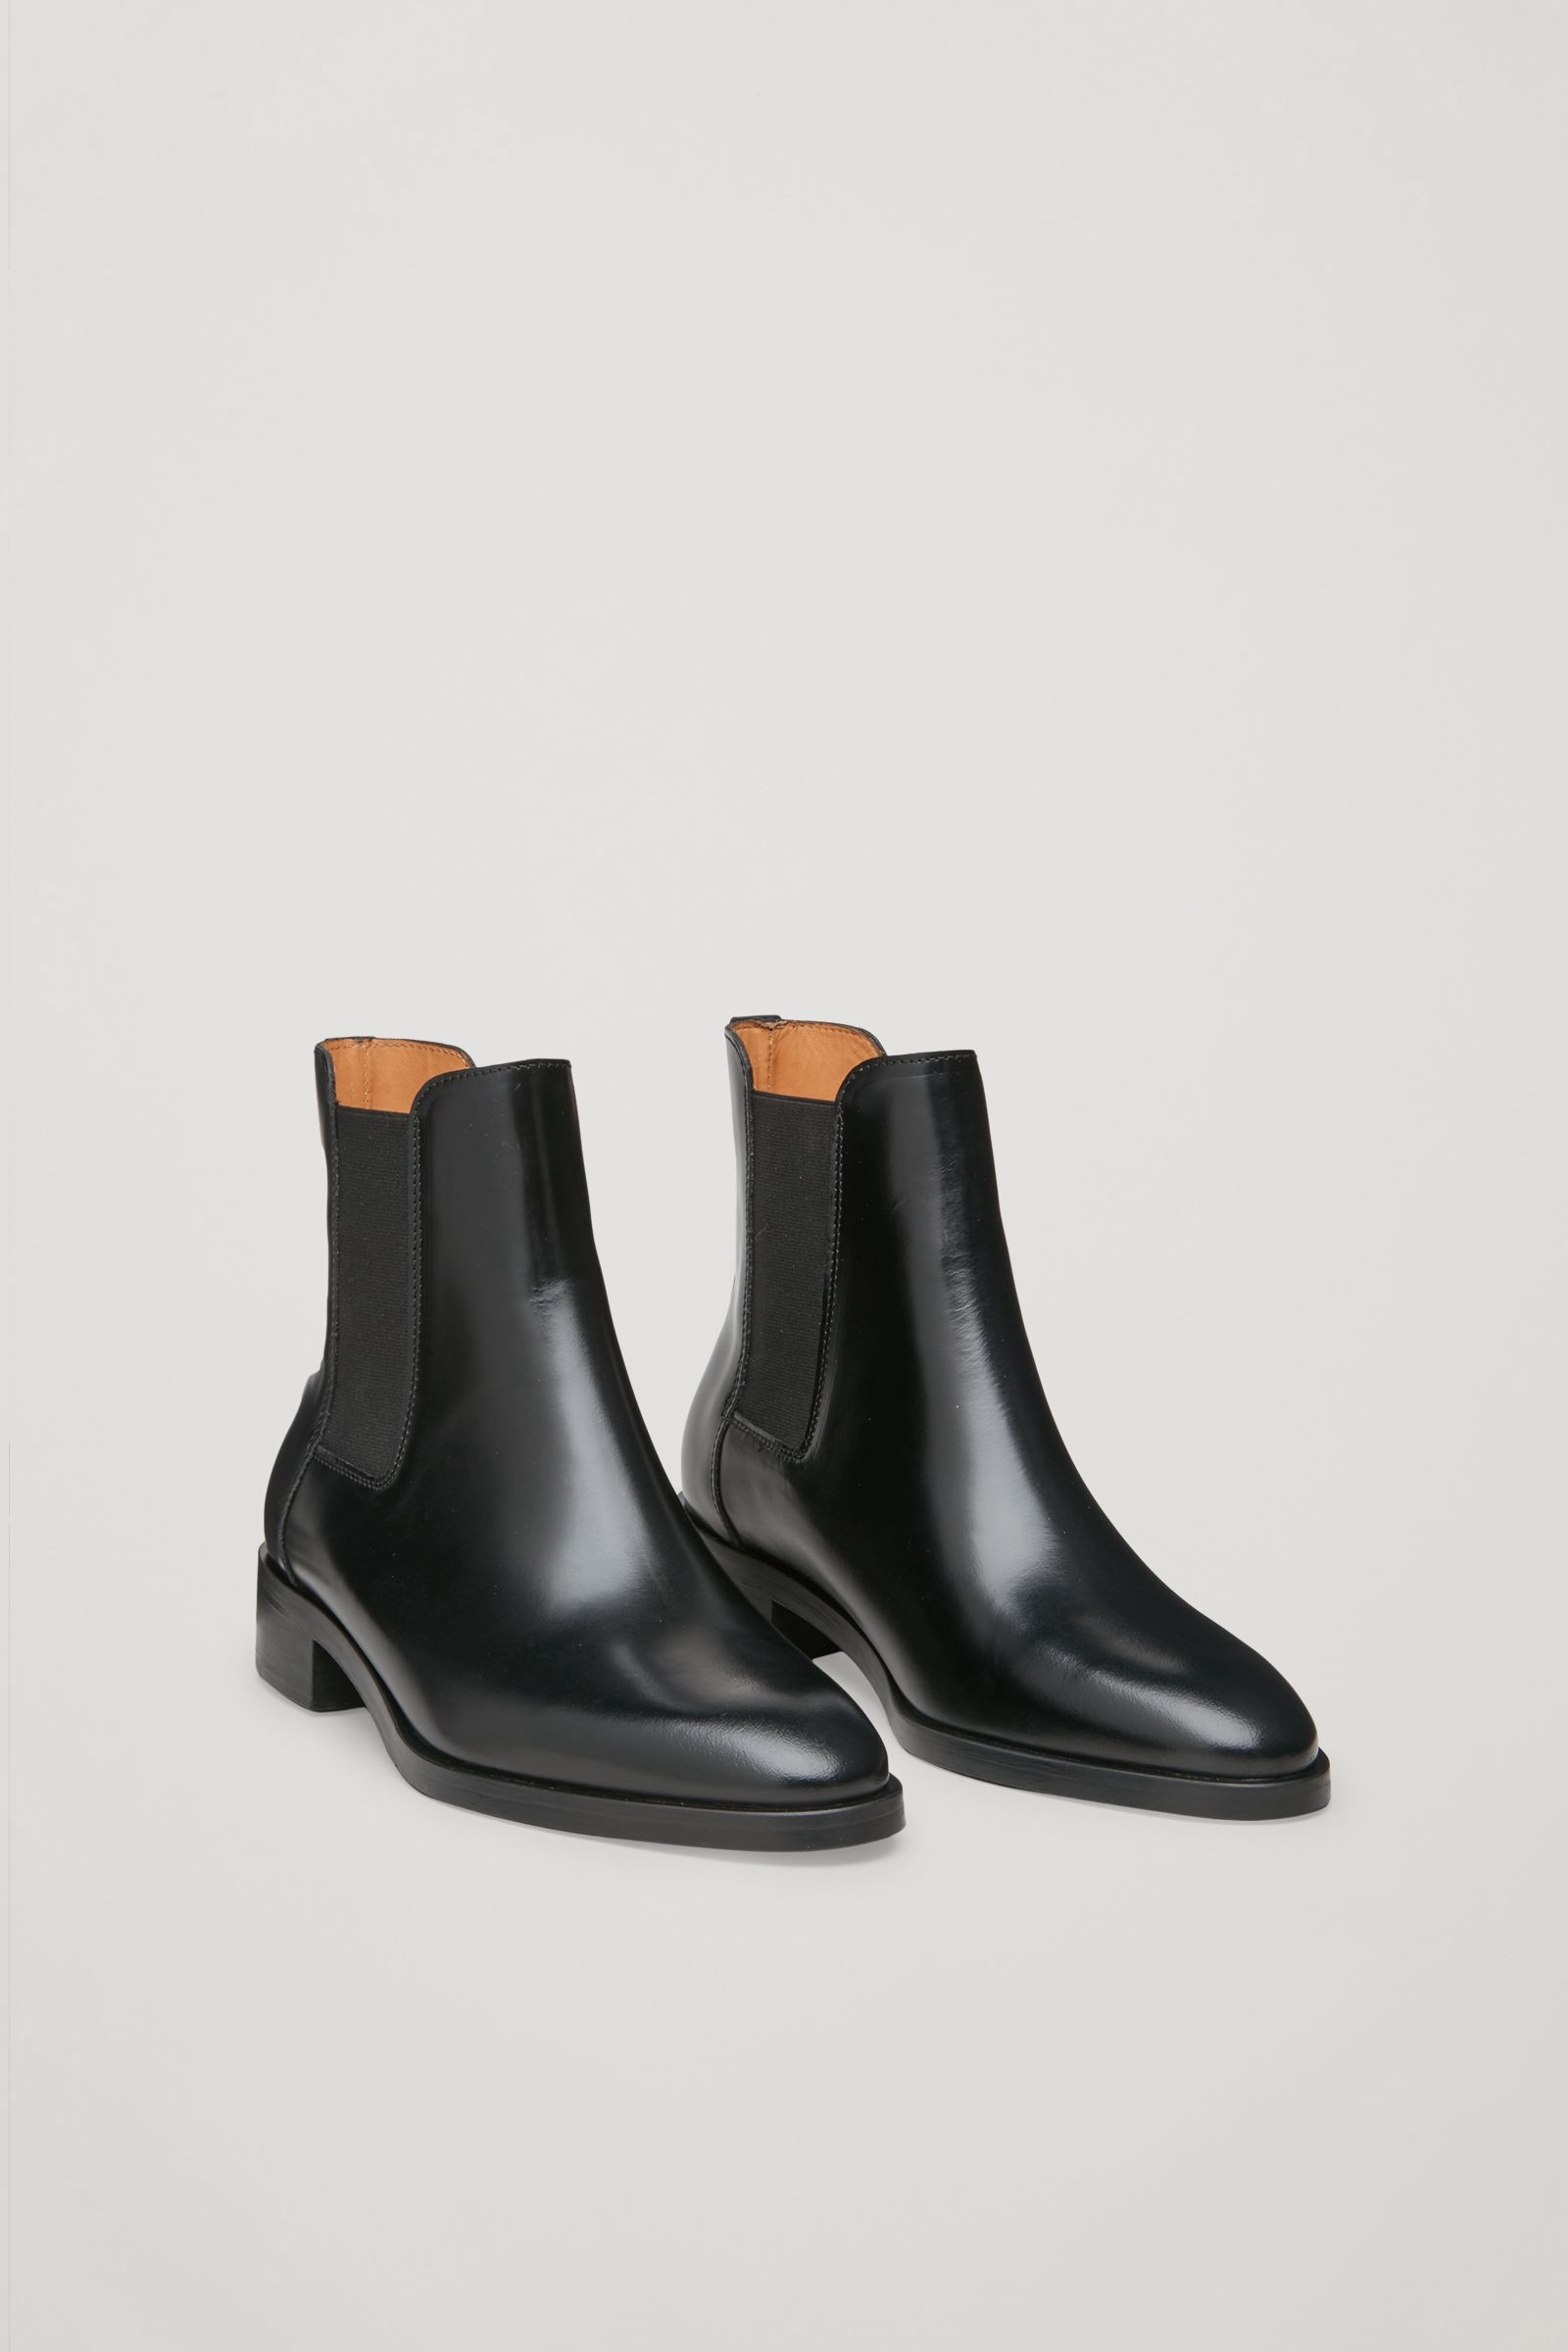 CHELSEA BOOTS - black by COS   Products   Boots, Chelsea boots ... ef82dcddc2